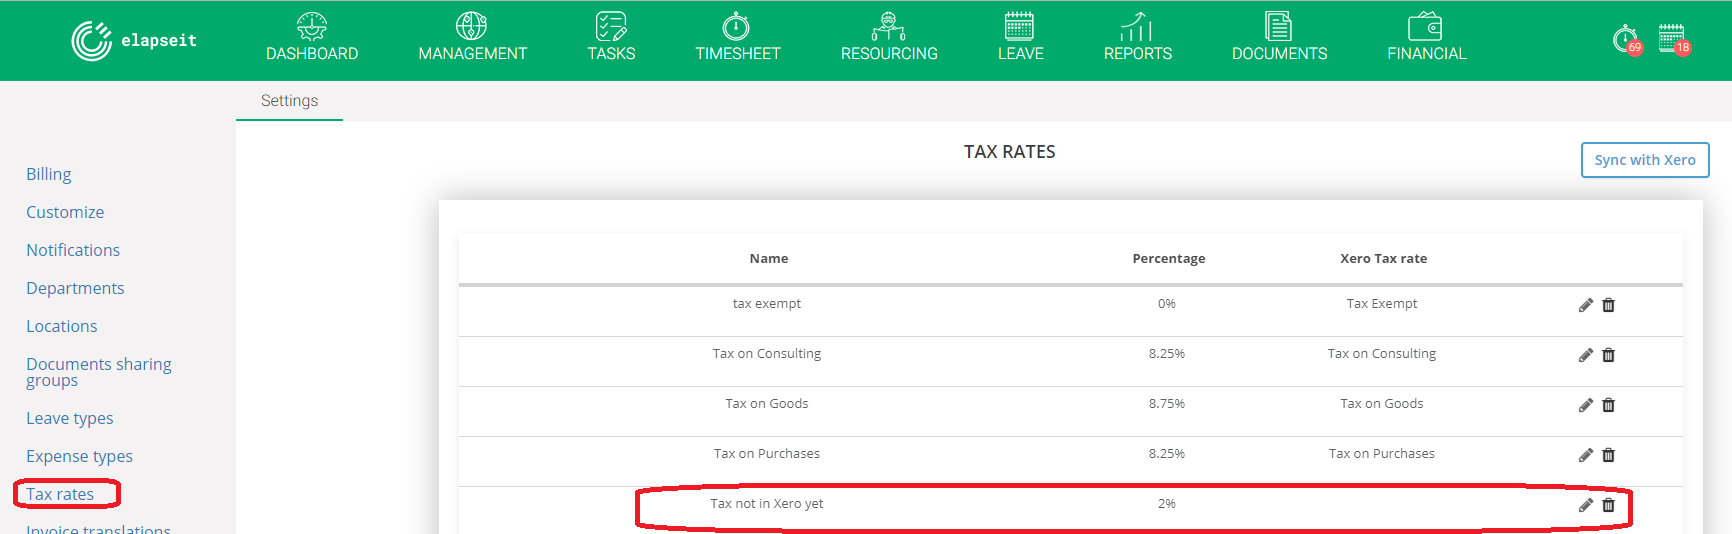 Tax rates in elapseit and Xero